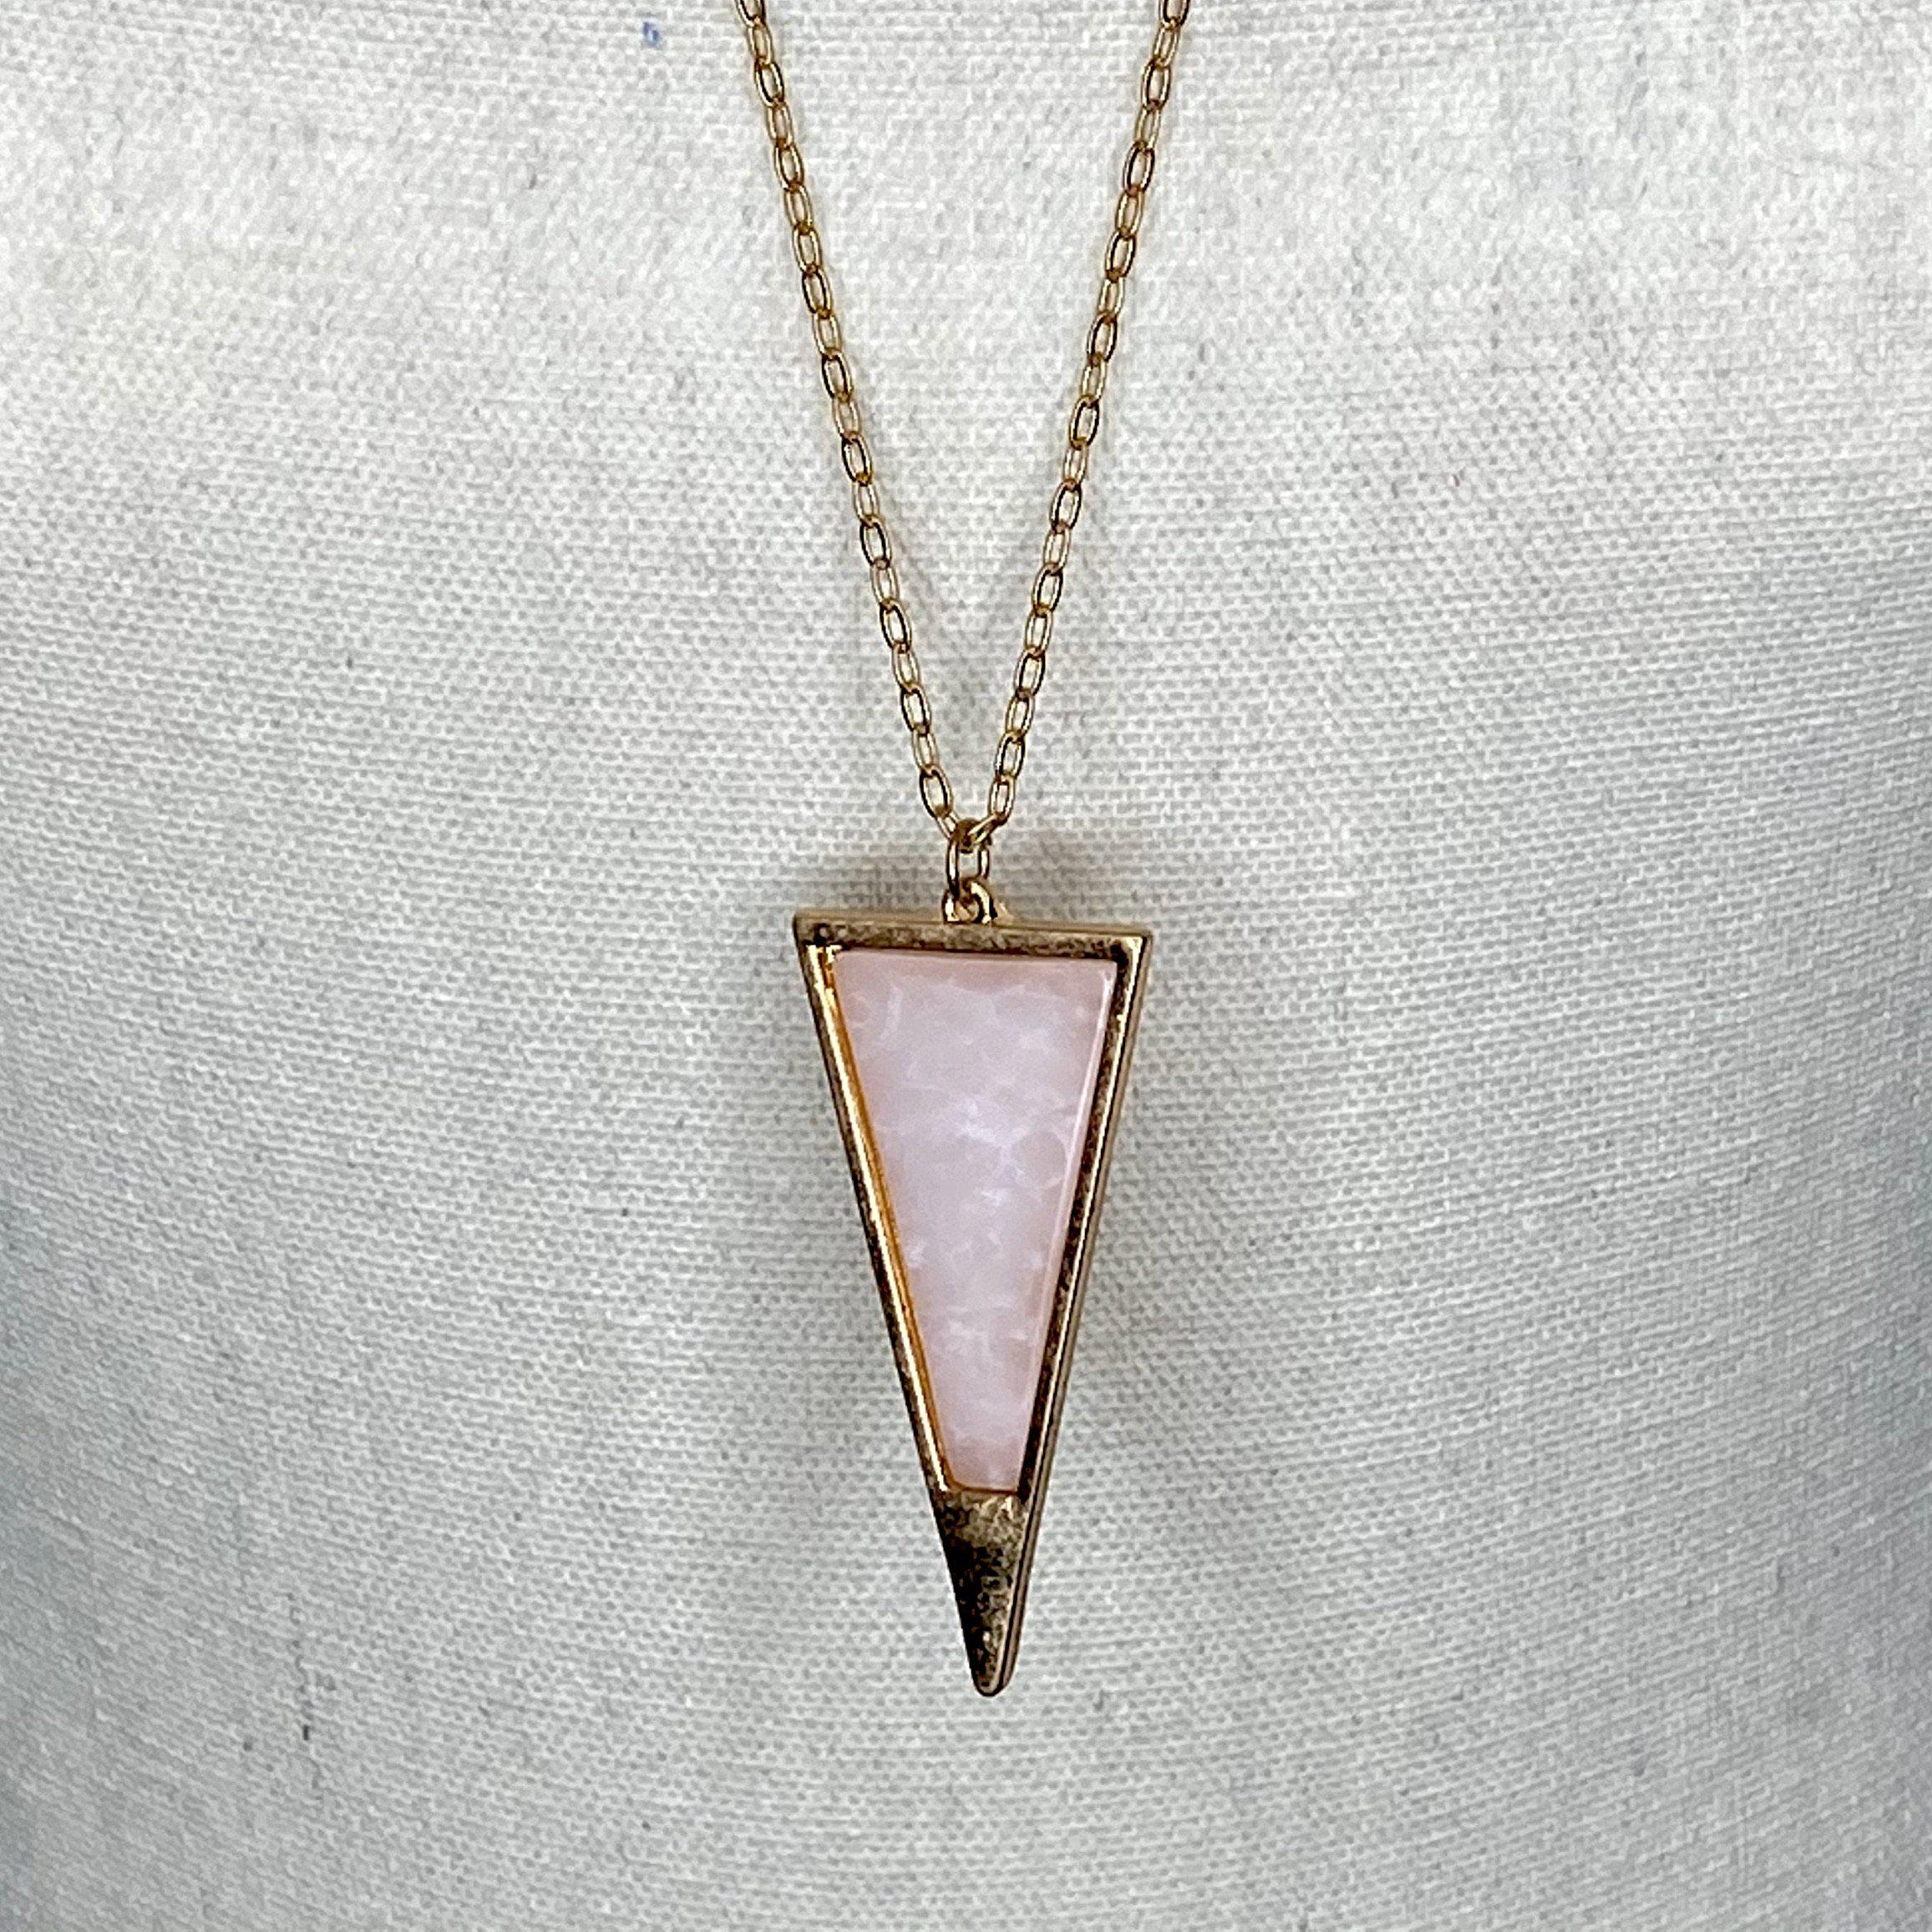 Triangle stone Necklace in 2 colors